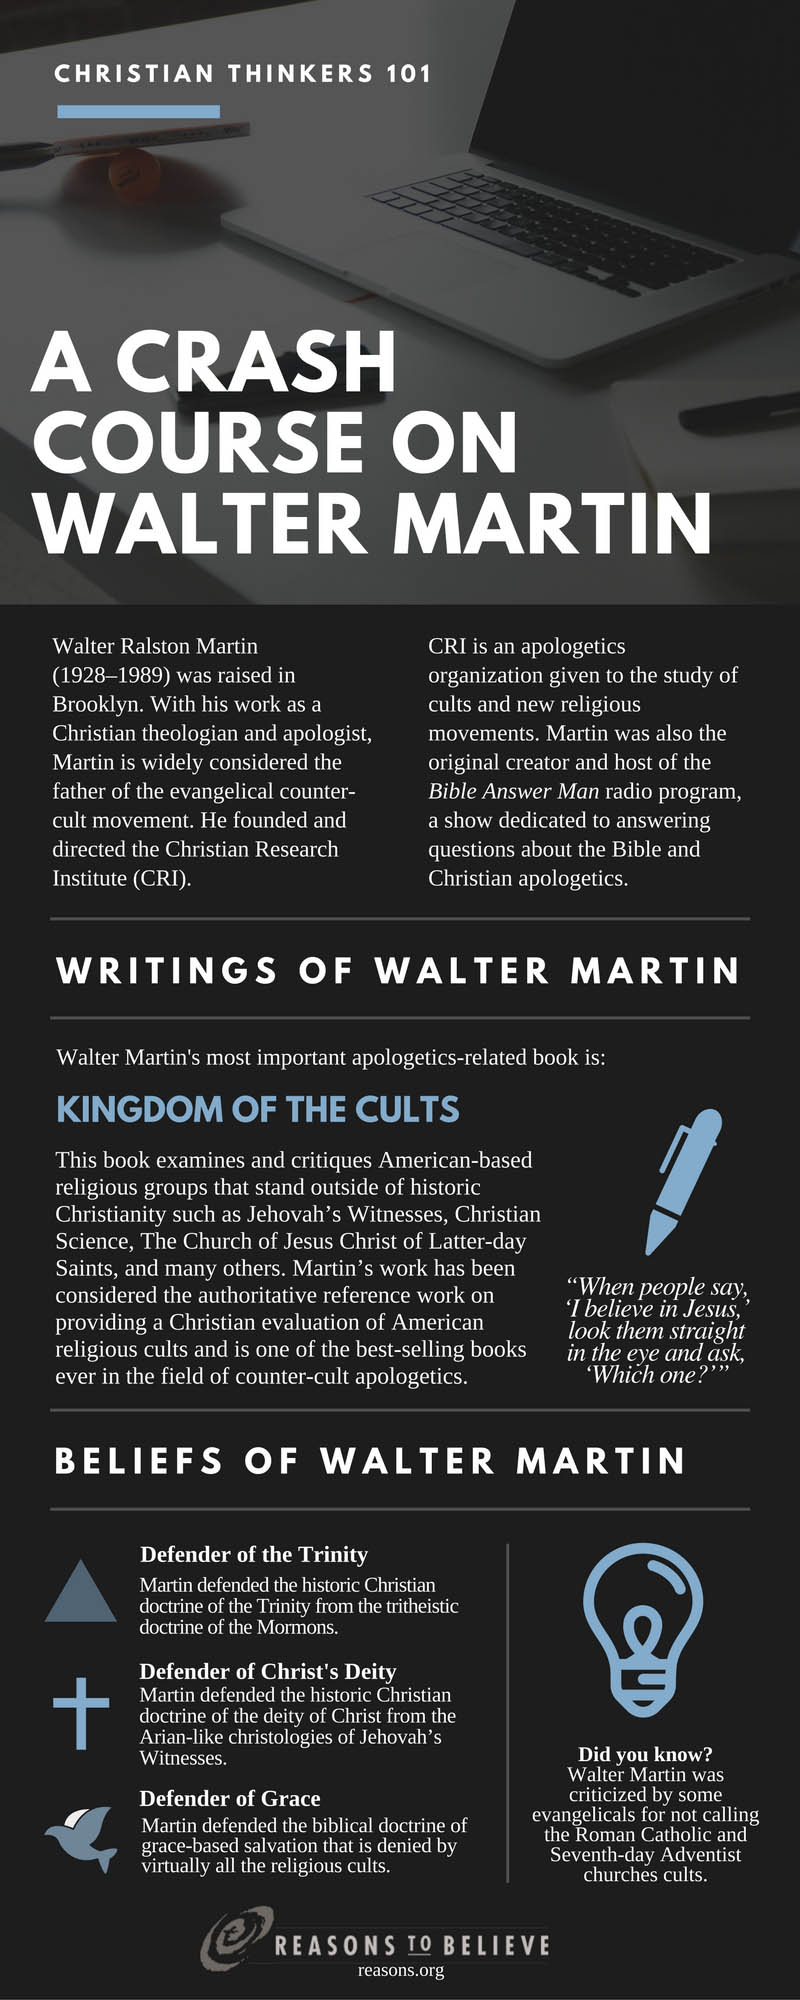 blog__inline--christian-thinkers-101-a -crash-course-on-walter-martin